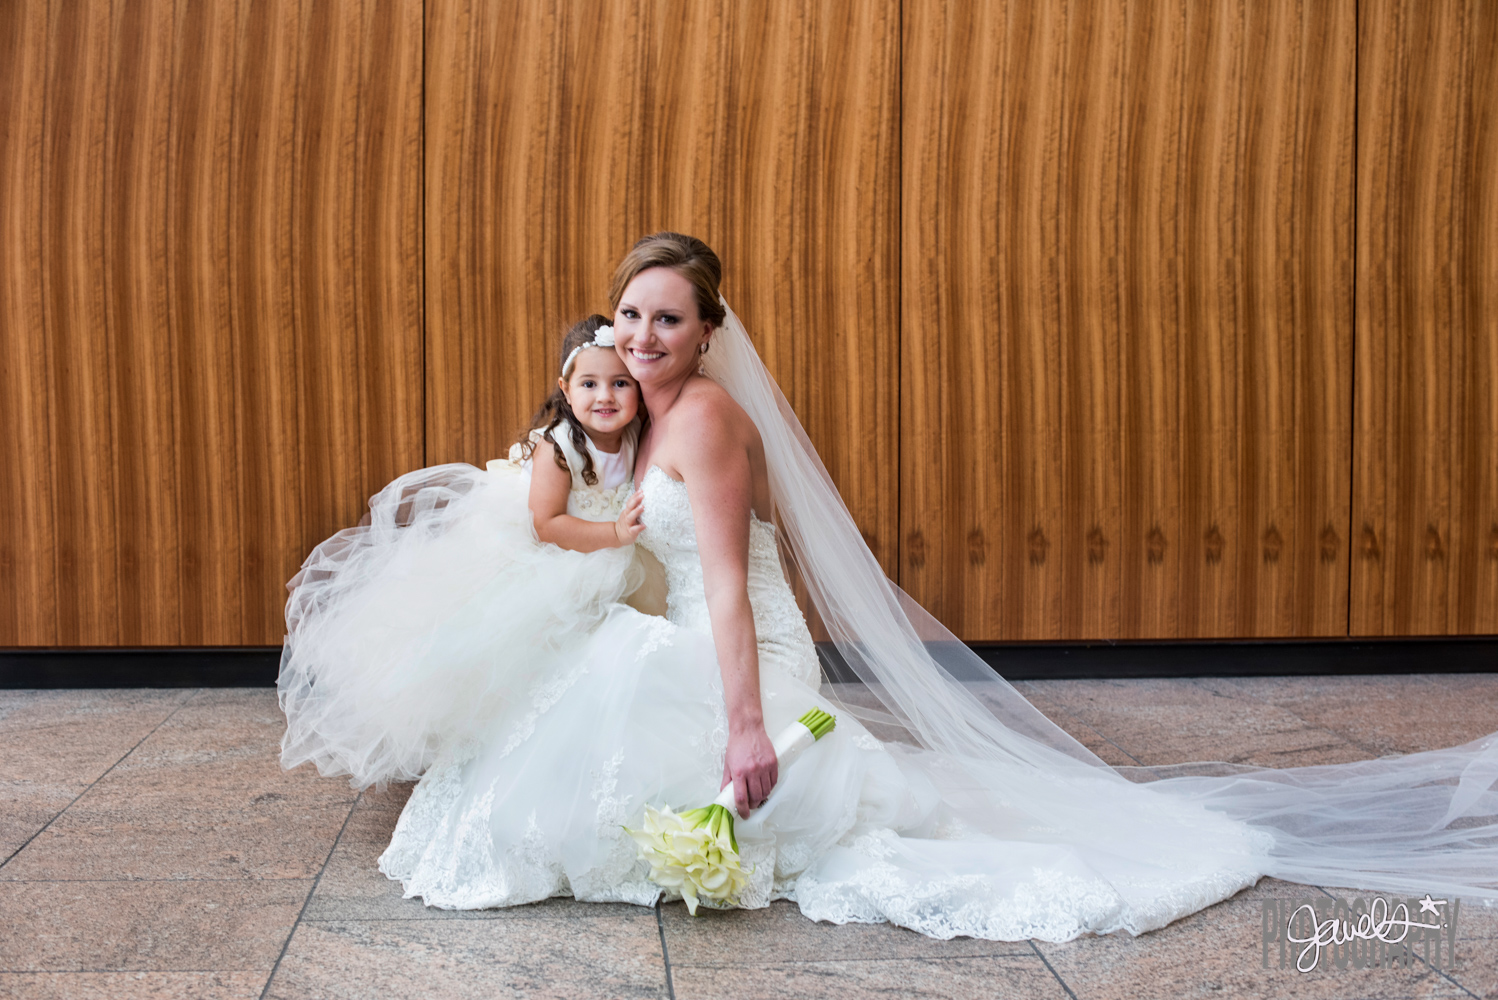 Grand Hyatt Denver - Denver Wedding Photographer